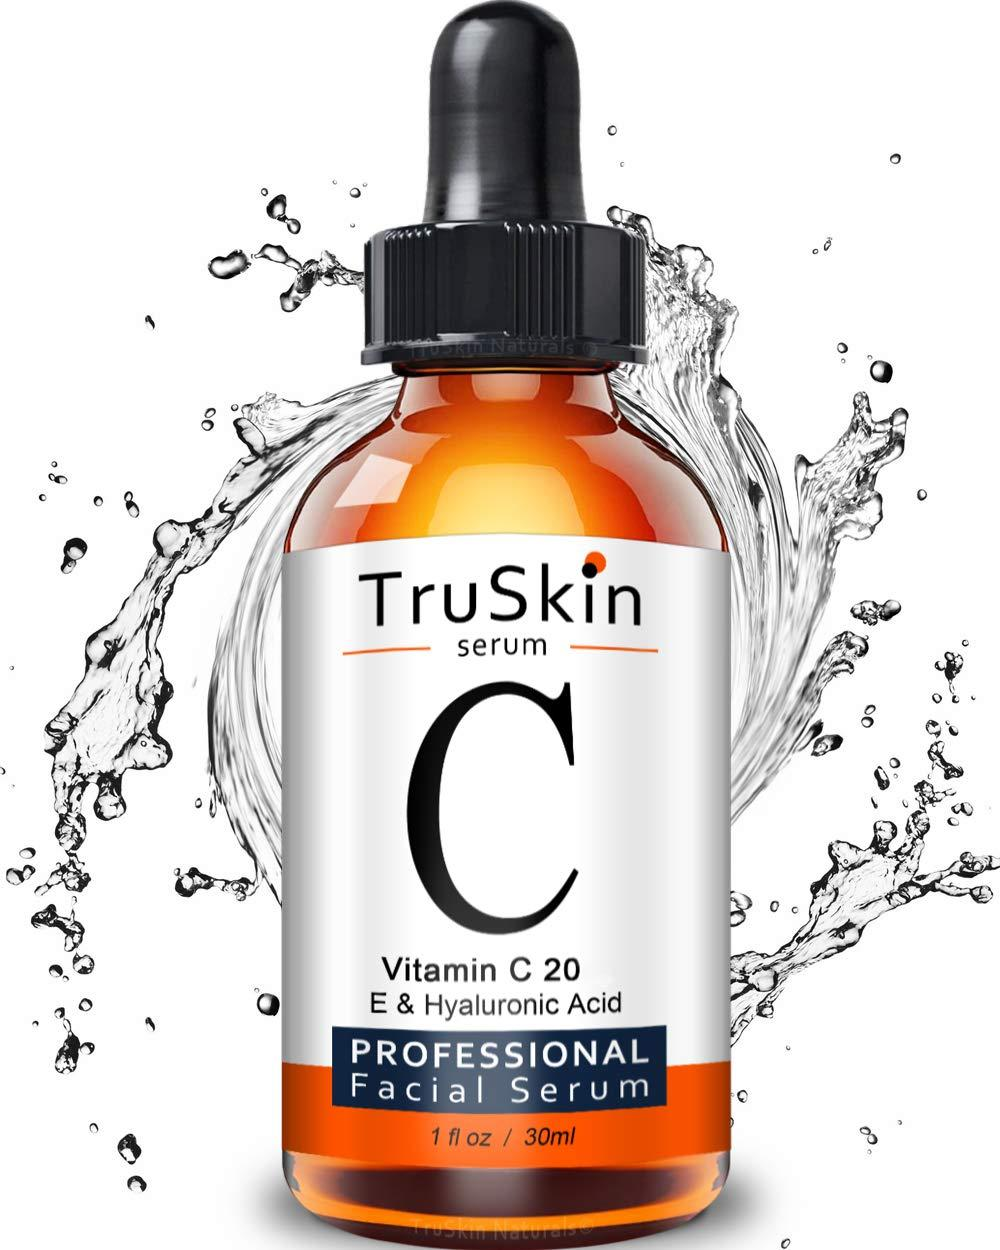 Naturals Vitamin C Serum for Face with Hyaluronic Acid & Vitamin E, 30ml